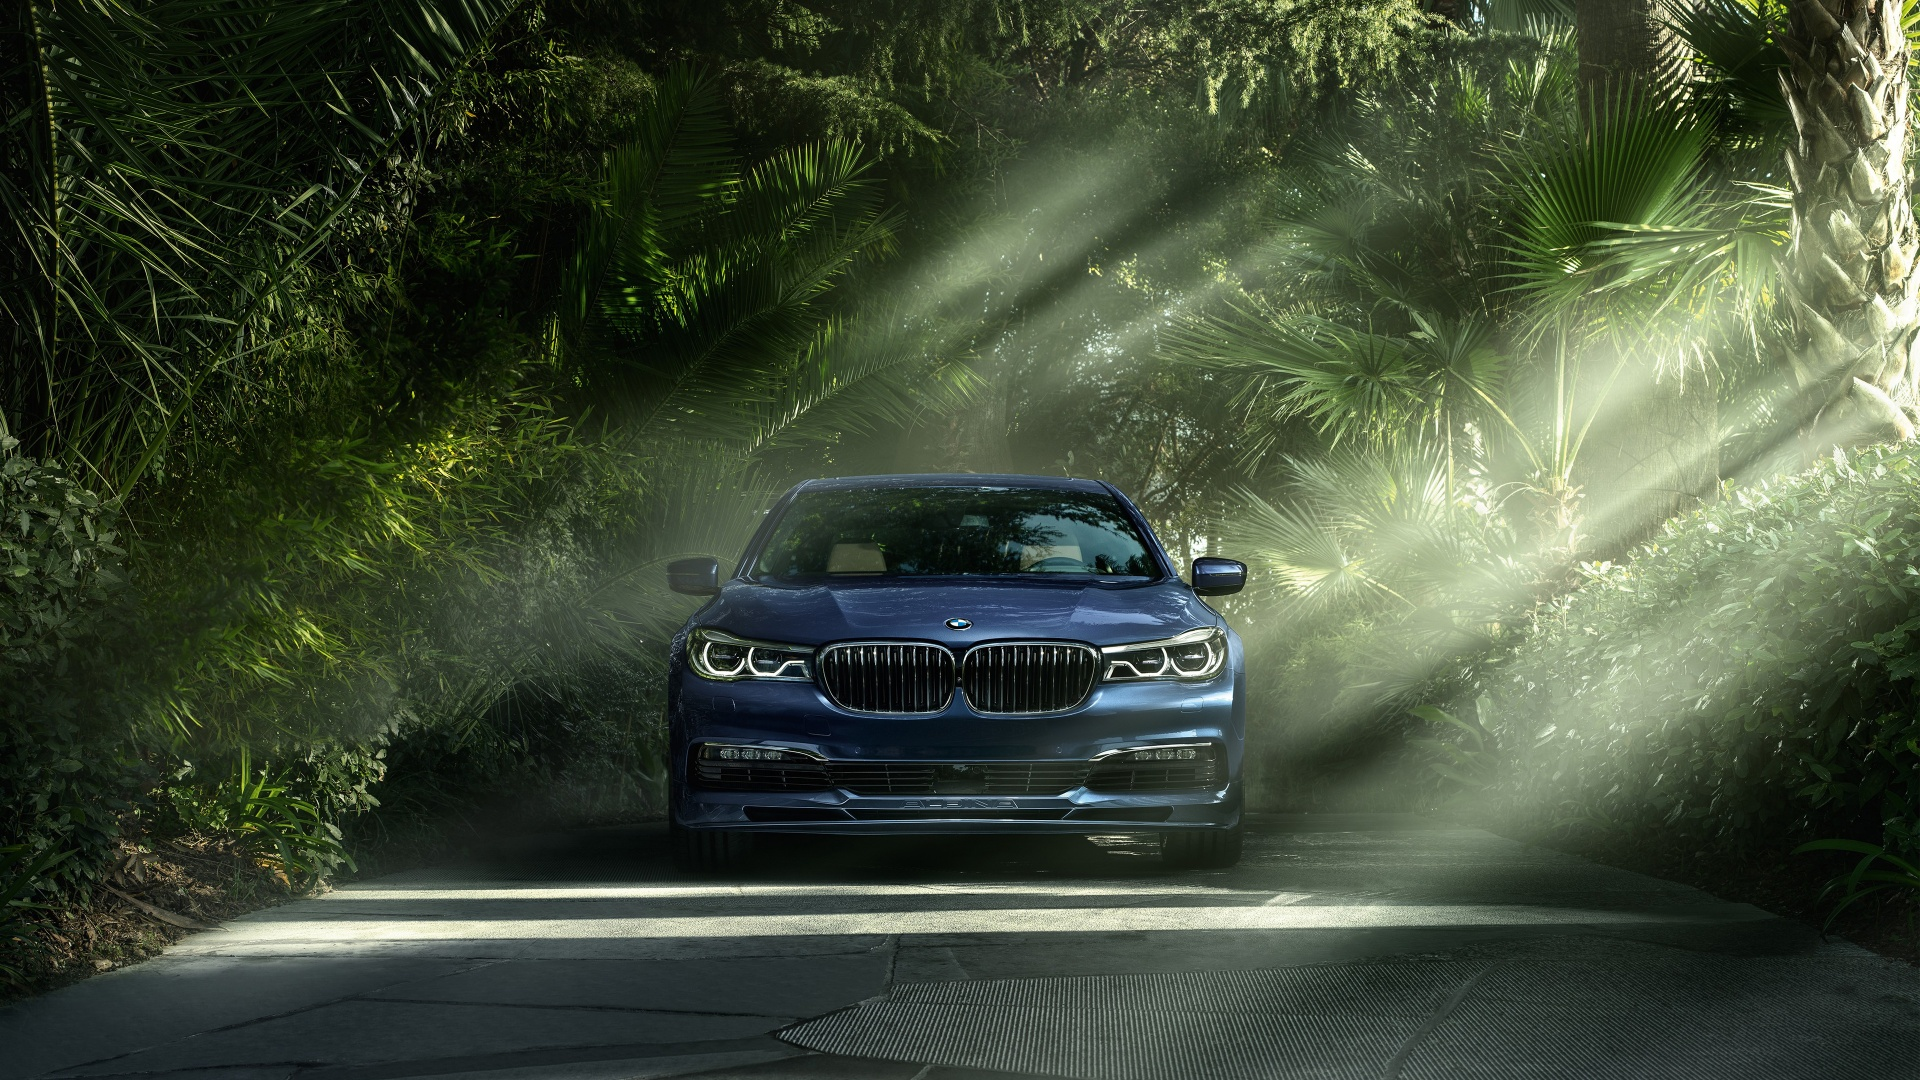 BMW Alpina B7 xDrive 2017 Wallpapers in jpg format for download 1920x1080